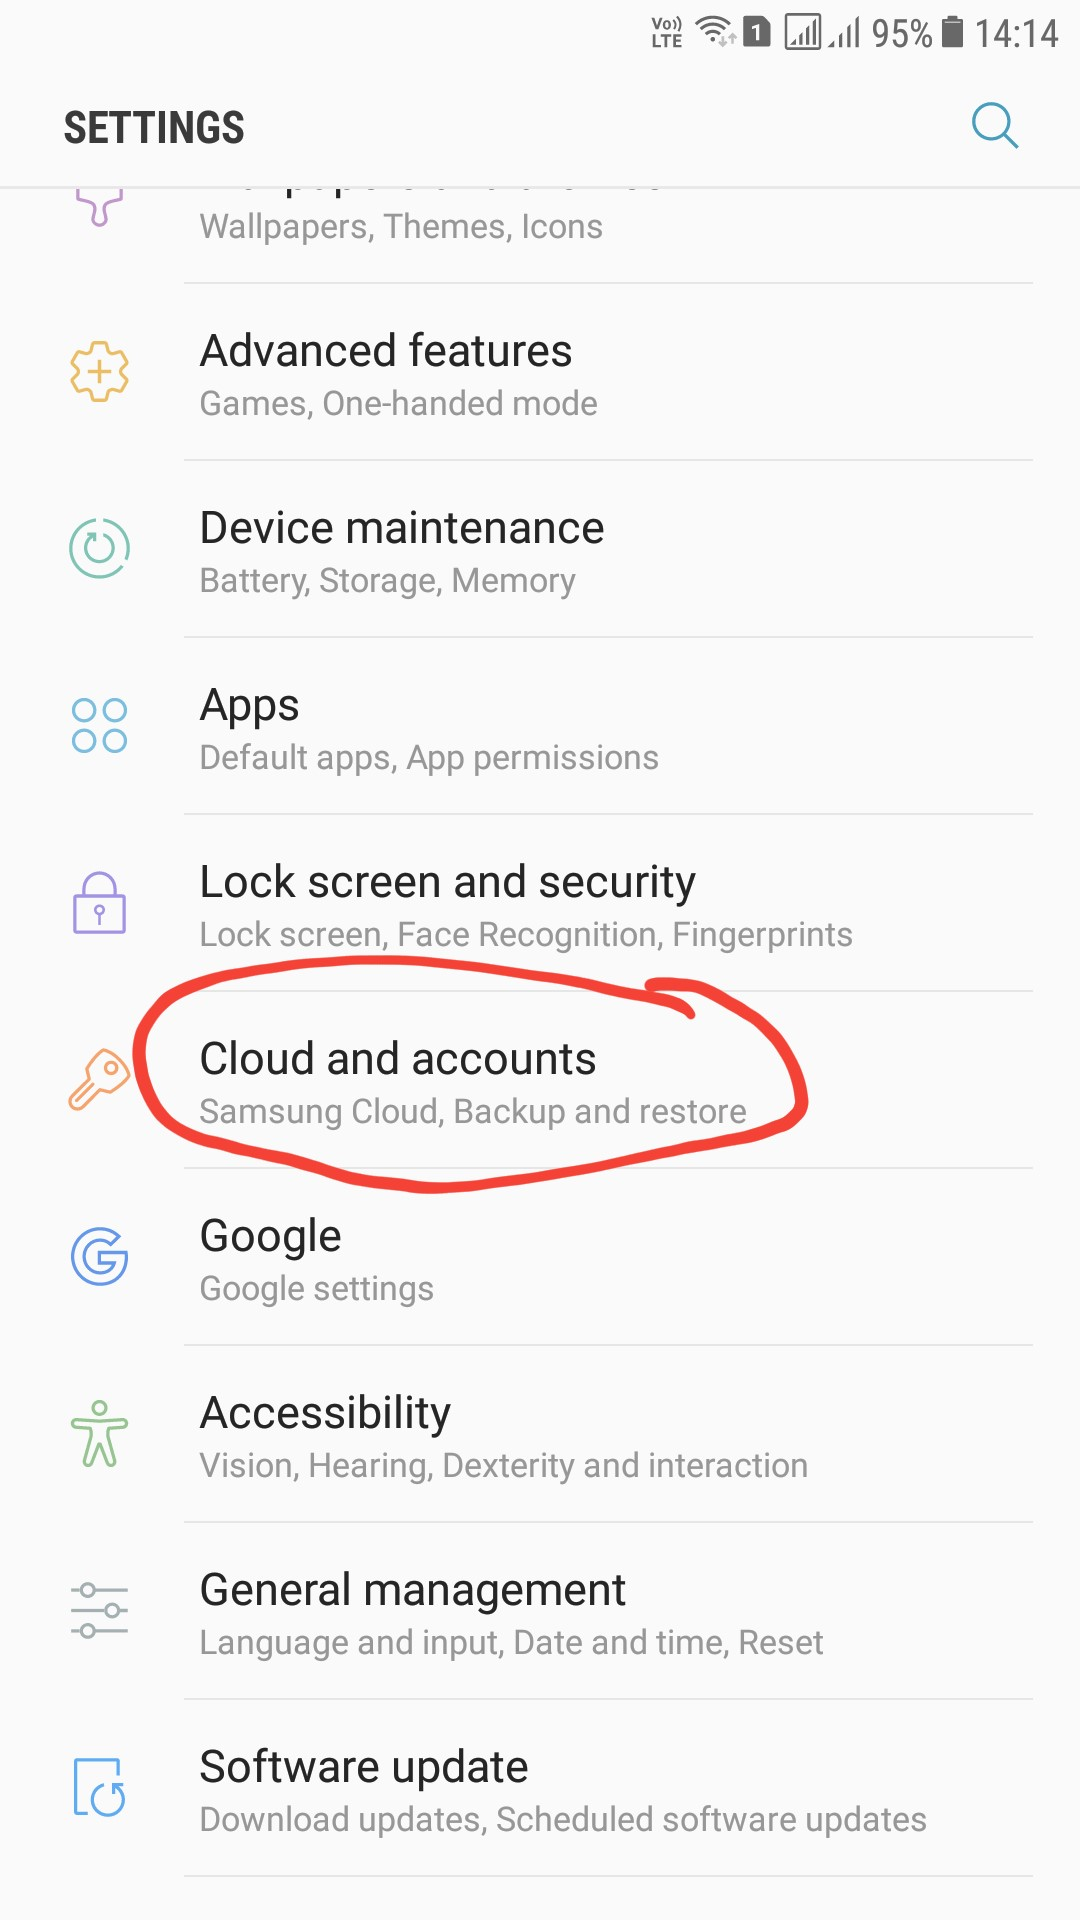 Android cloud and accounts